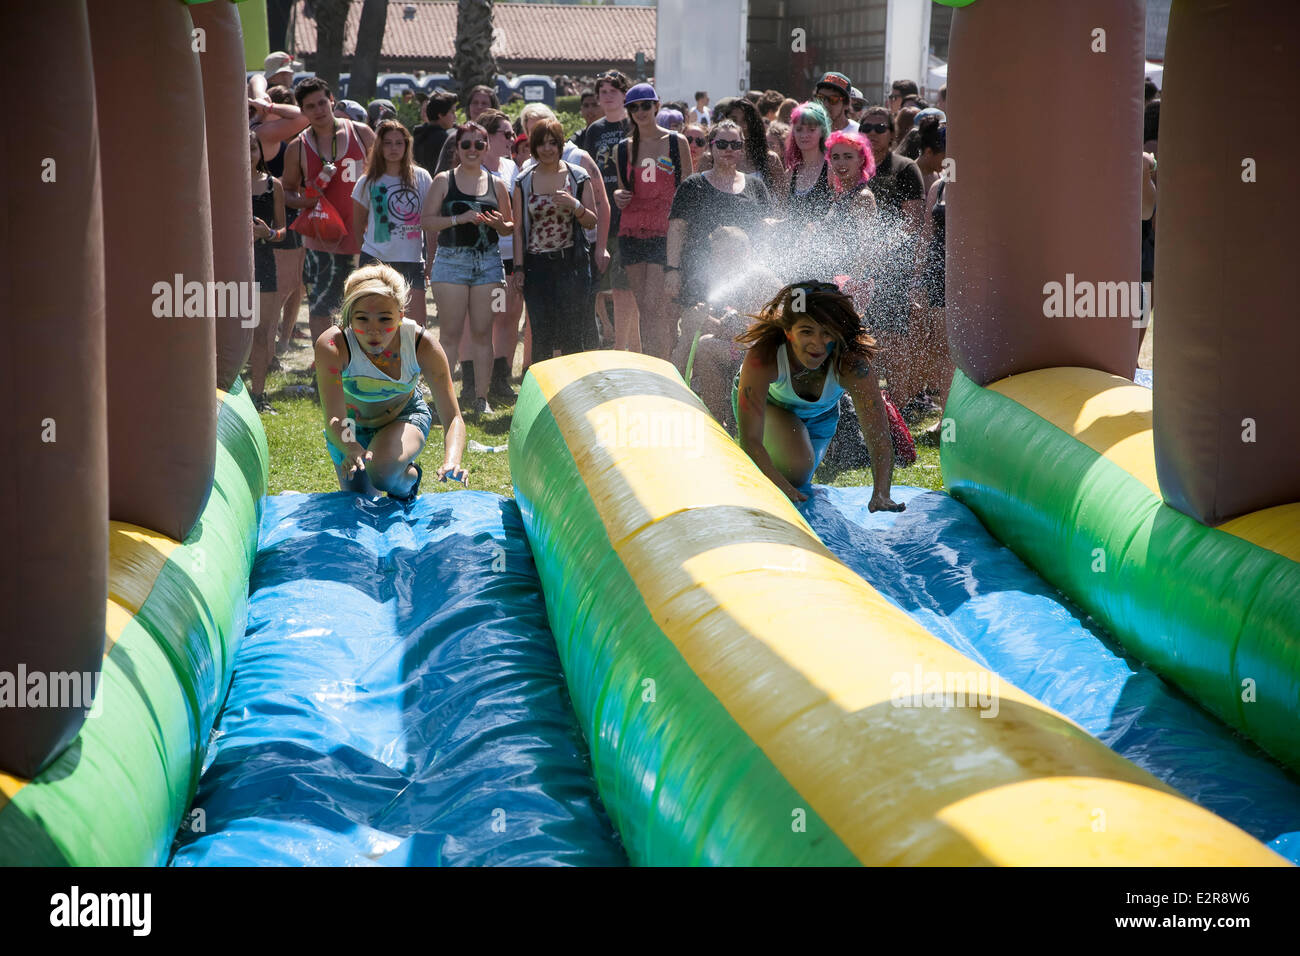 Pomona, CA, USA. 20th June, 2014. The slip and slide at the Vans Warped Tour. Thousands of young alternative music - Stock Image